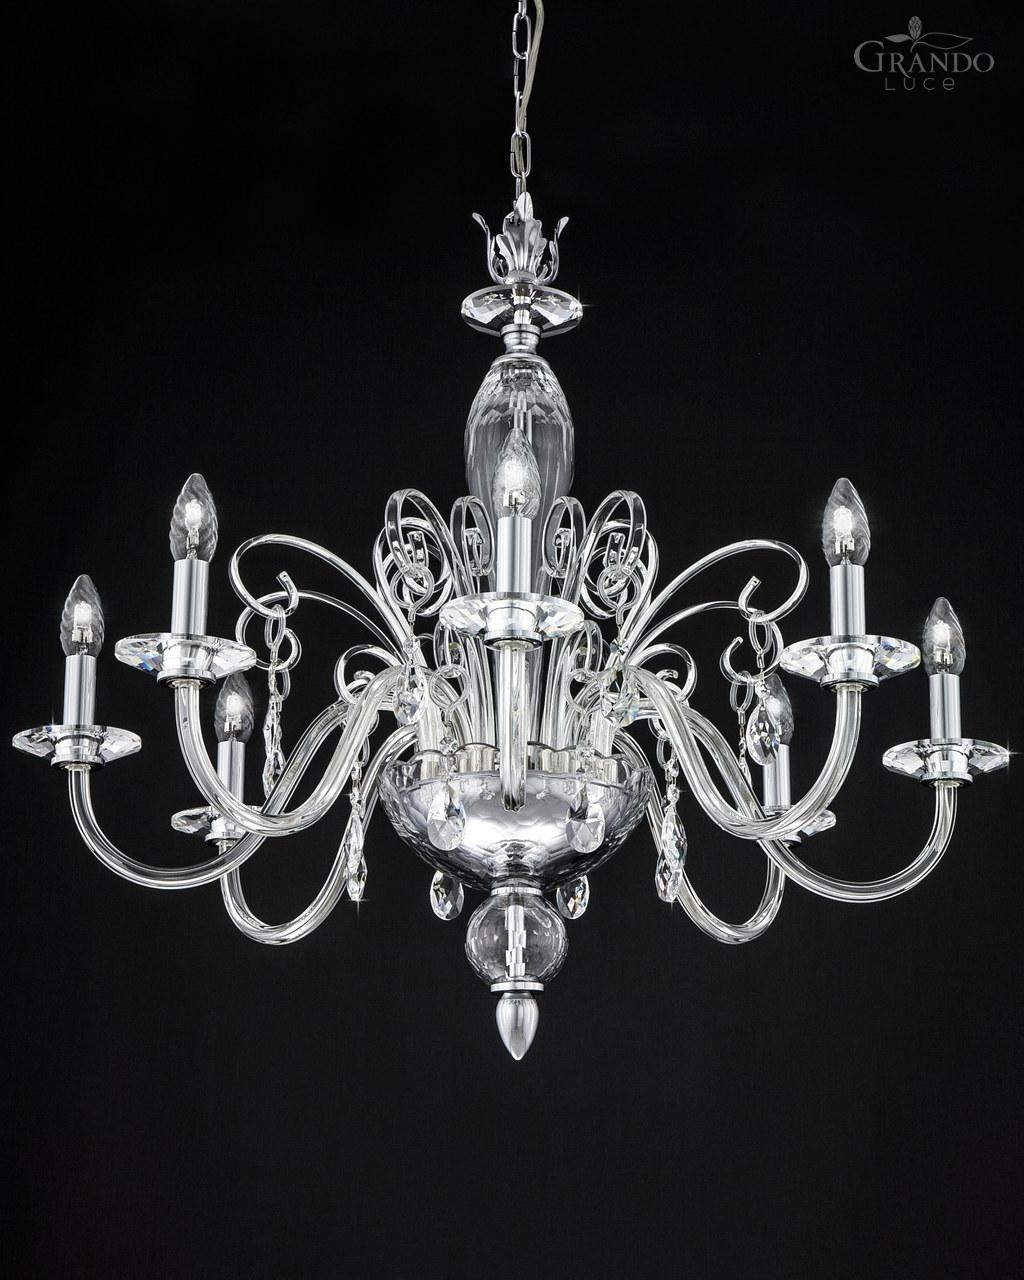 1208 Ch Chrome Crystal Chandelier With Swarovski Elements With Regard To Crystal And Chrome Chandeliers (Image 3 of 15)